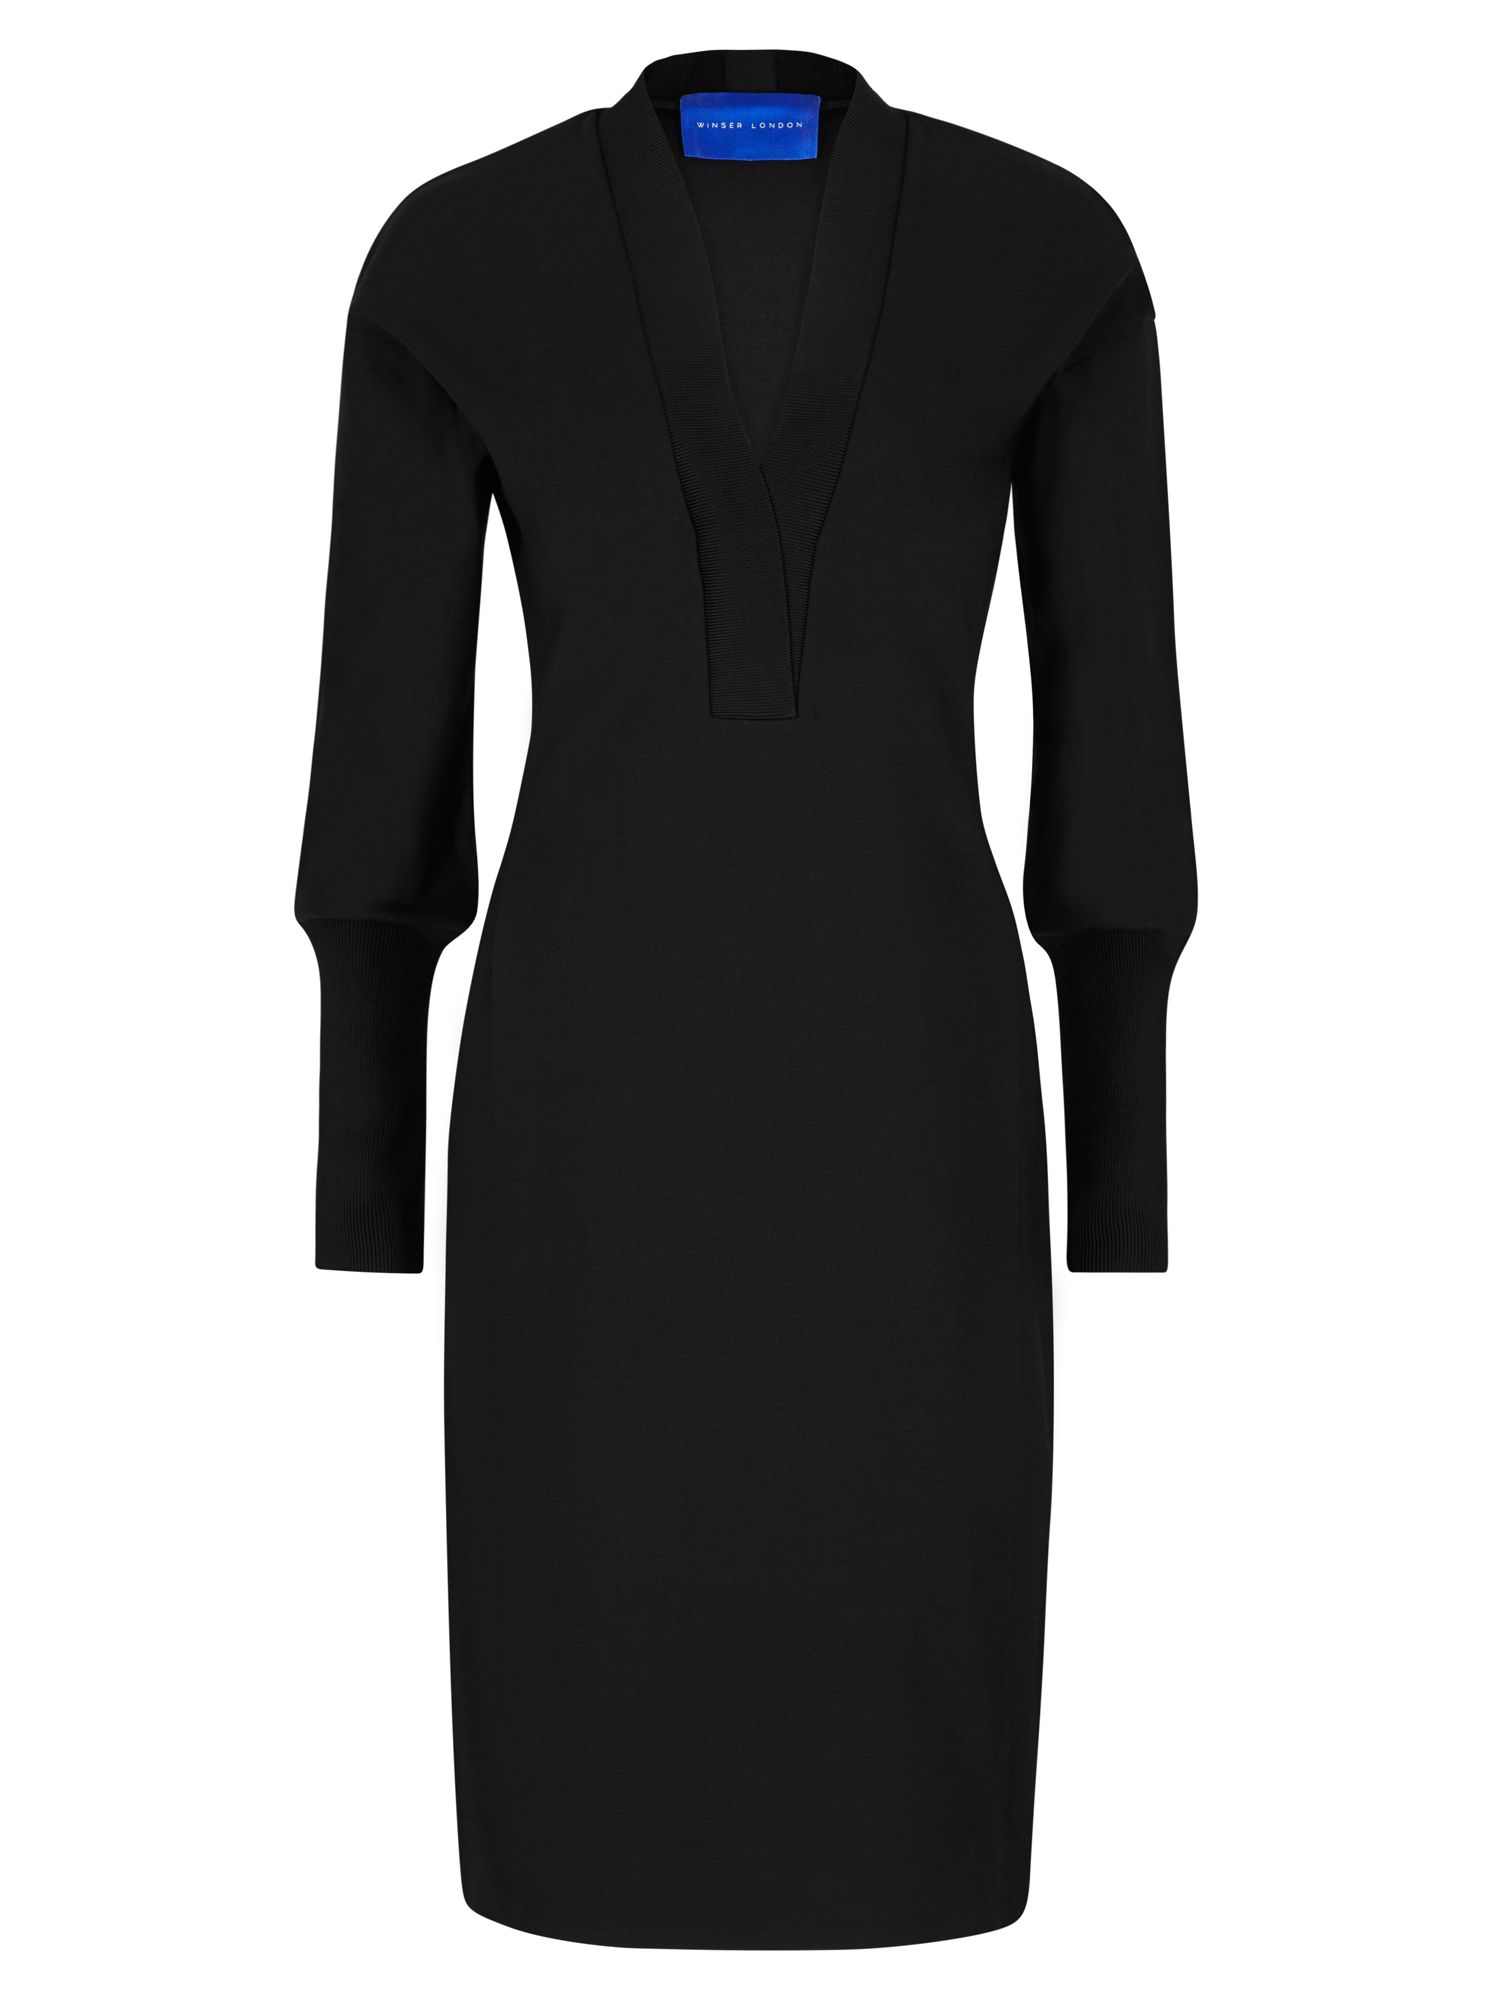 Winser London Deep V Neck Dress, Black